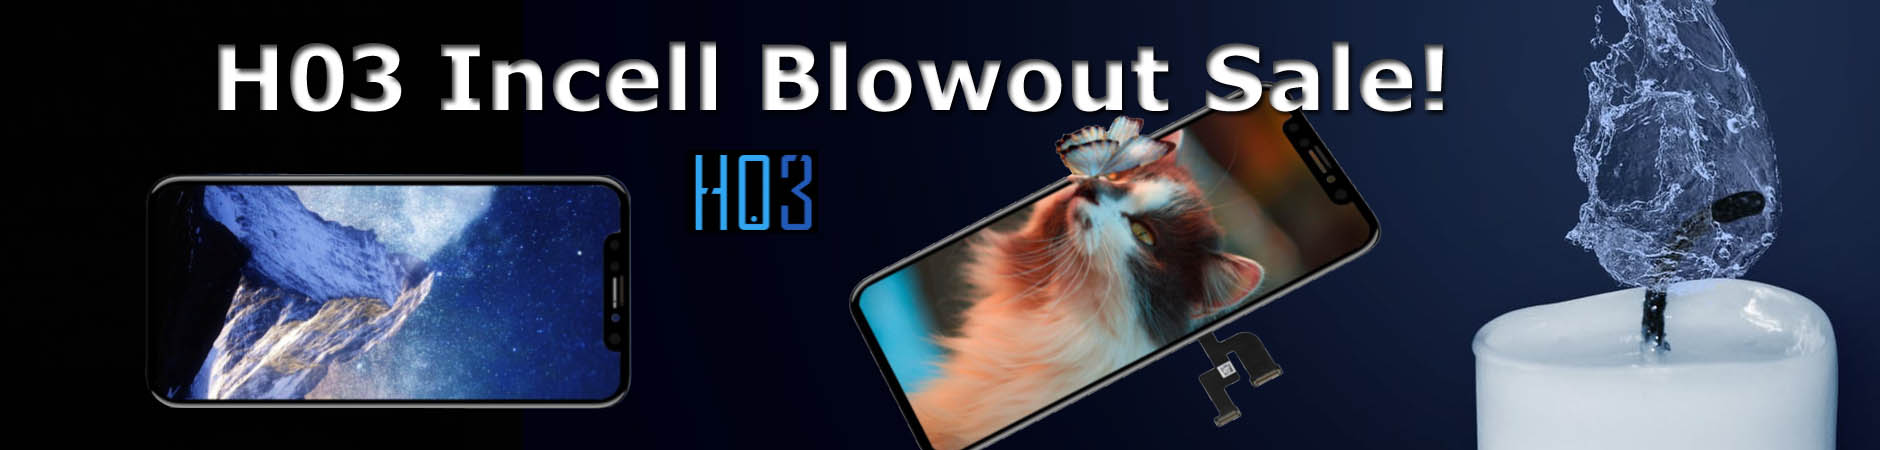 H03 Incell Blowout Sale